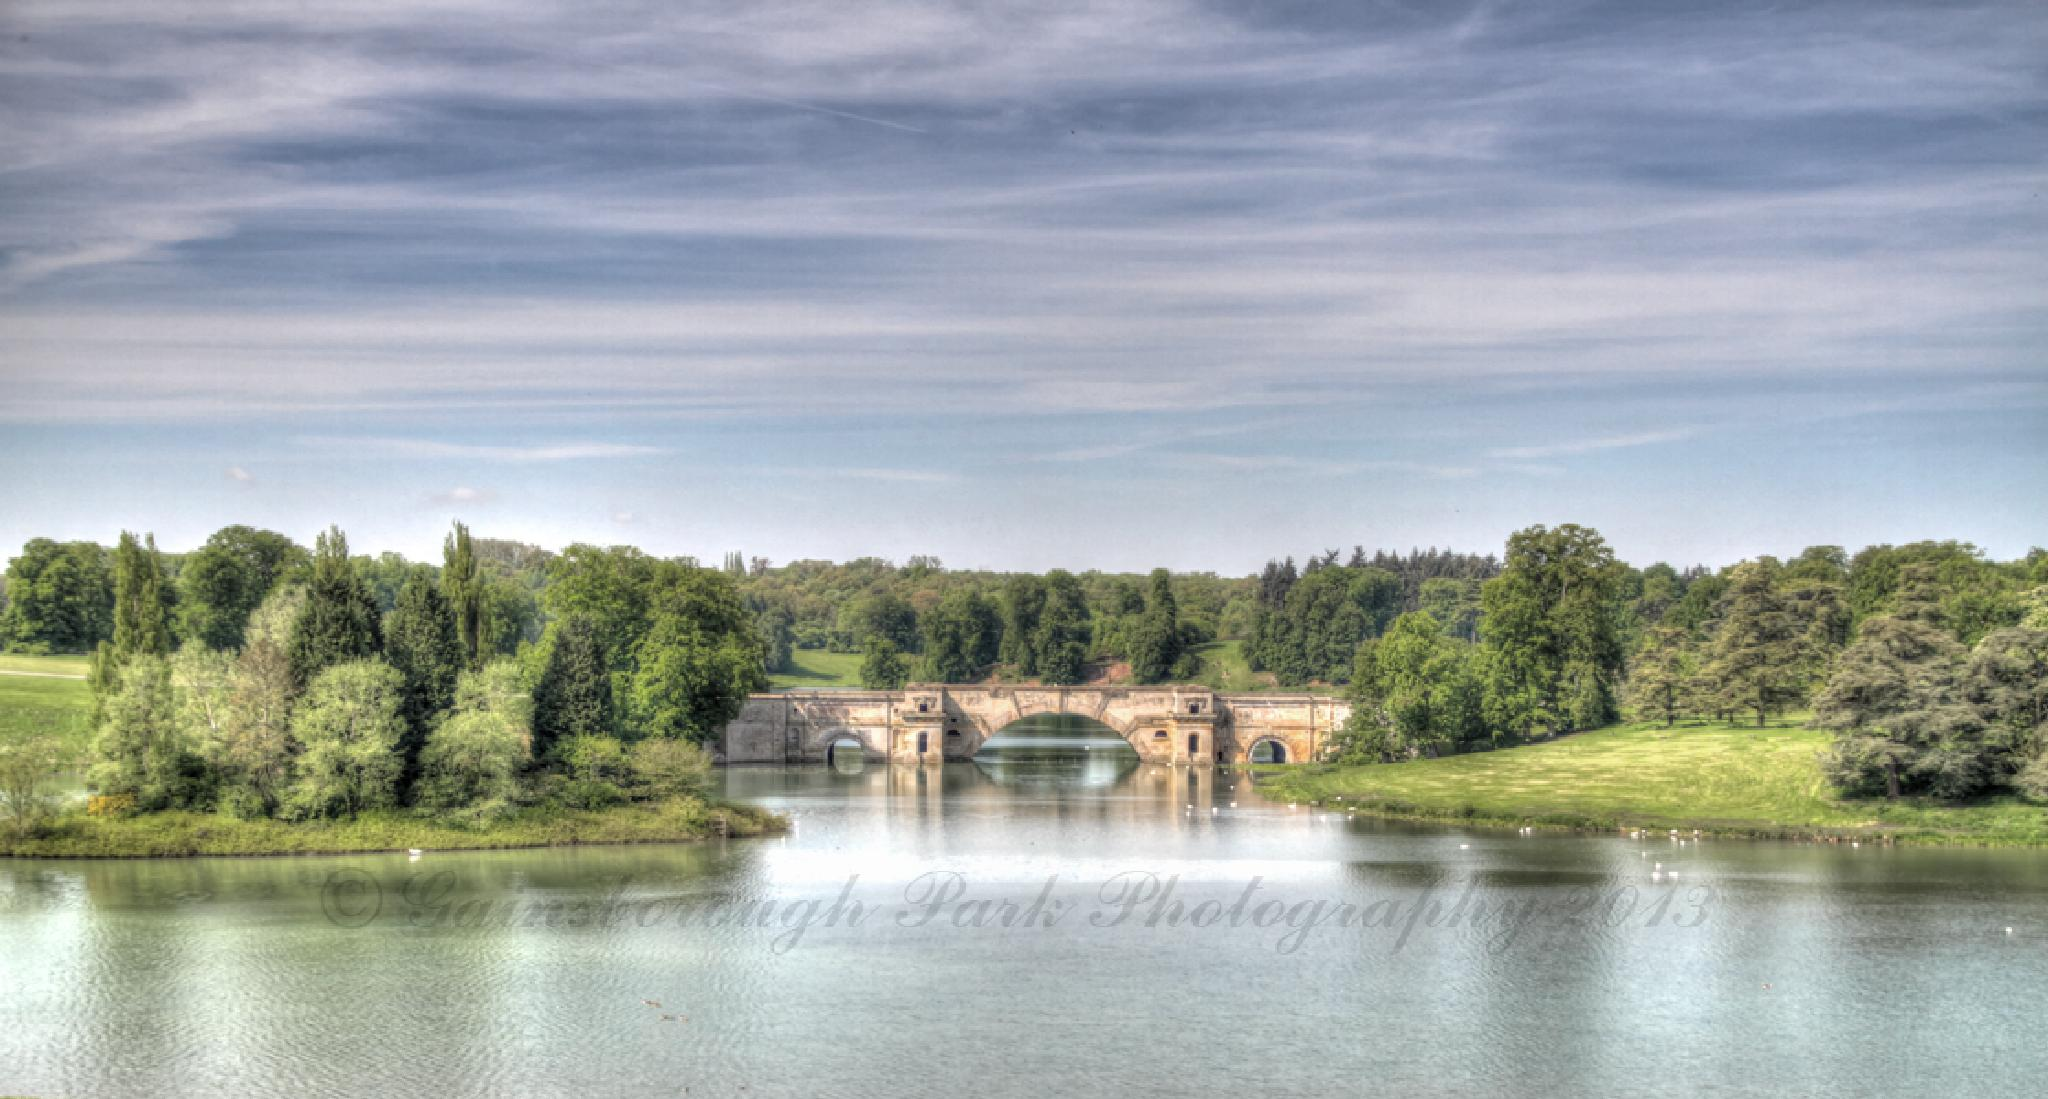 The Grand Bridge at Blenheim Palace by Gainsborough Park Photography